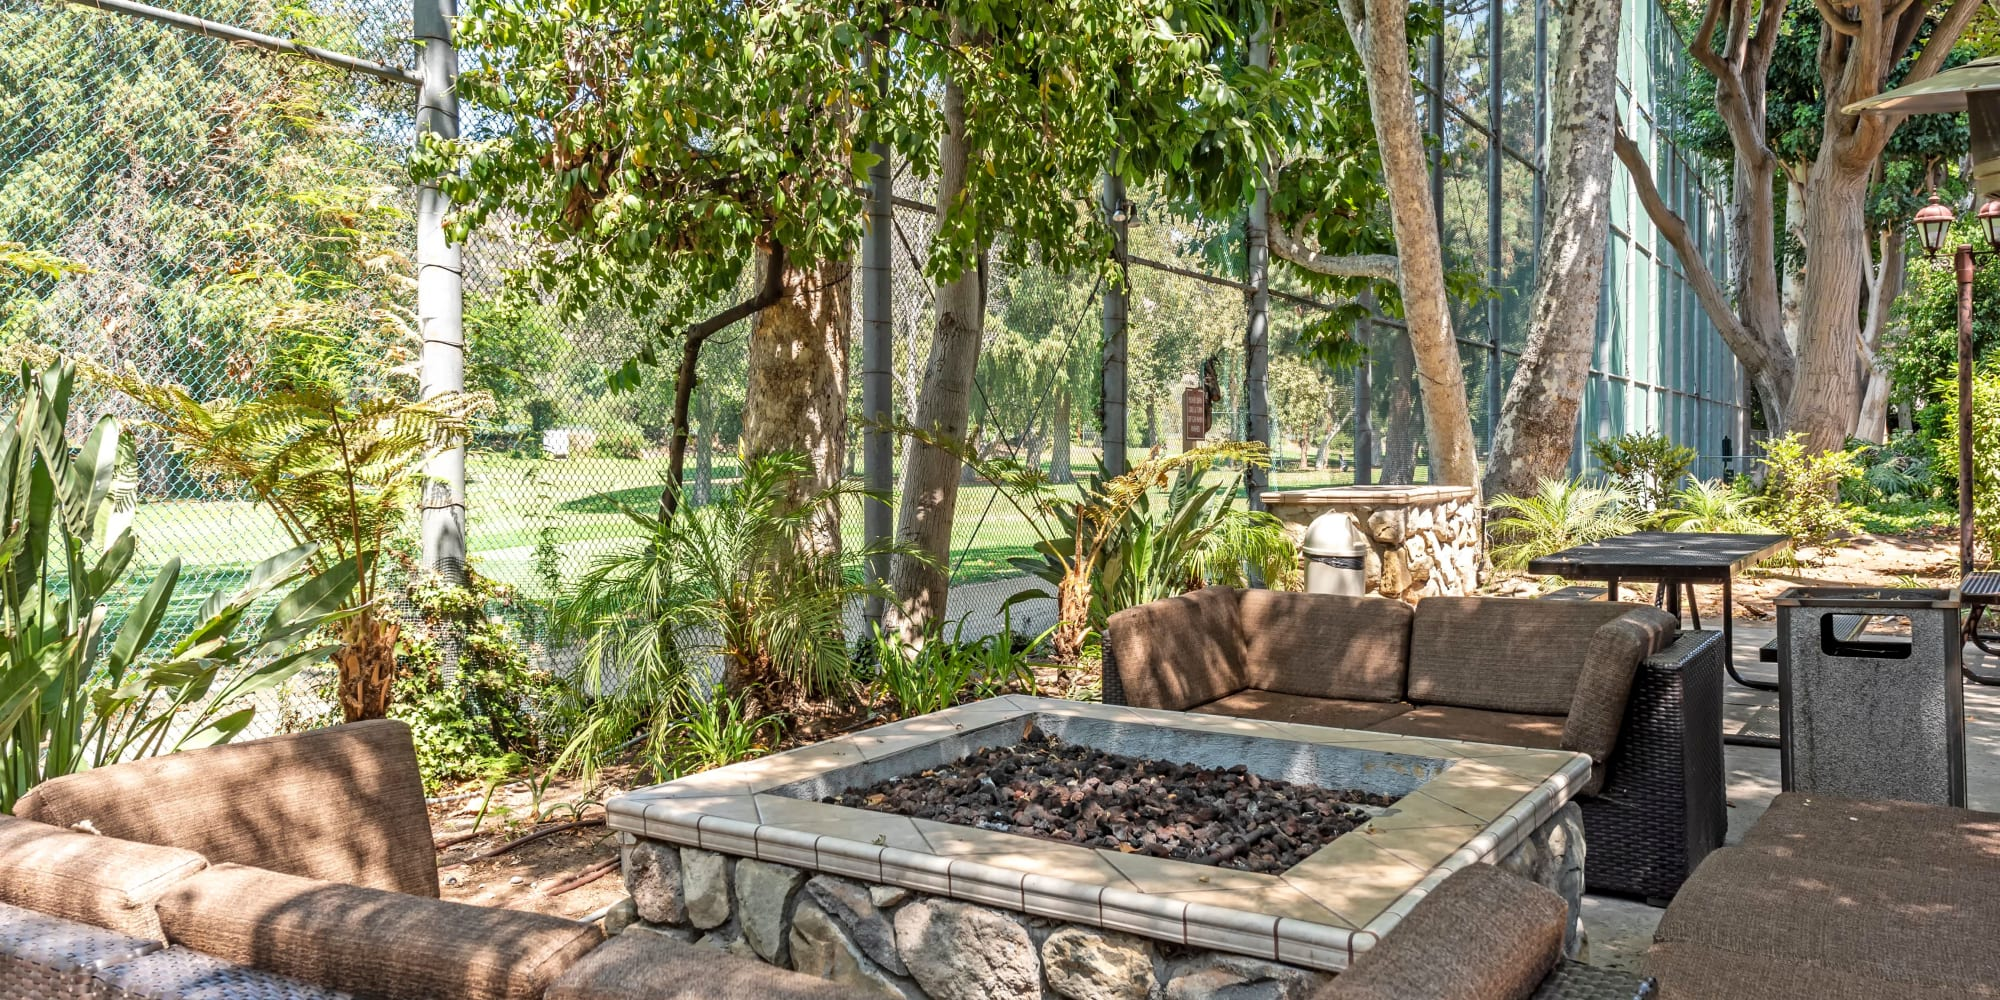 Comfortable seating around the fire pit at Rancho Los Feliz in Los Angeles, California